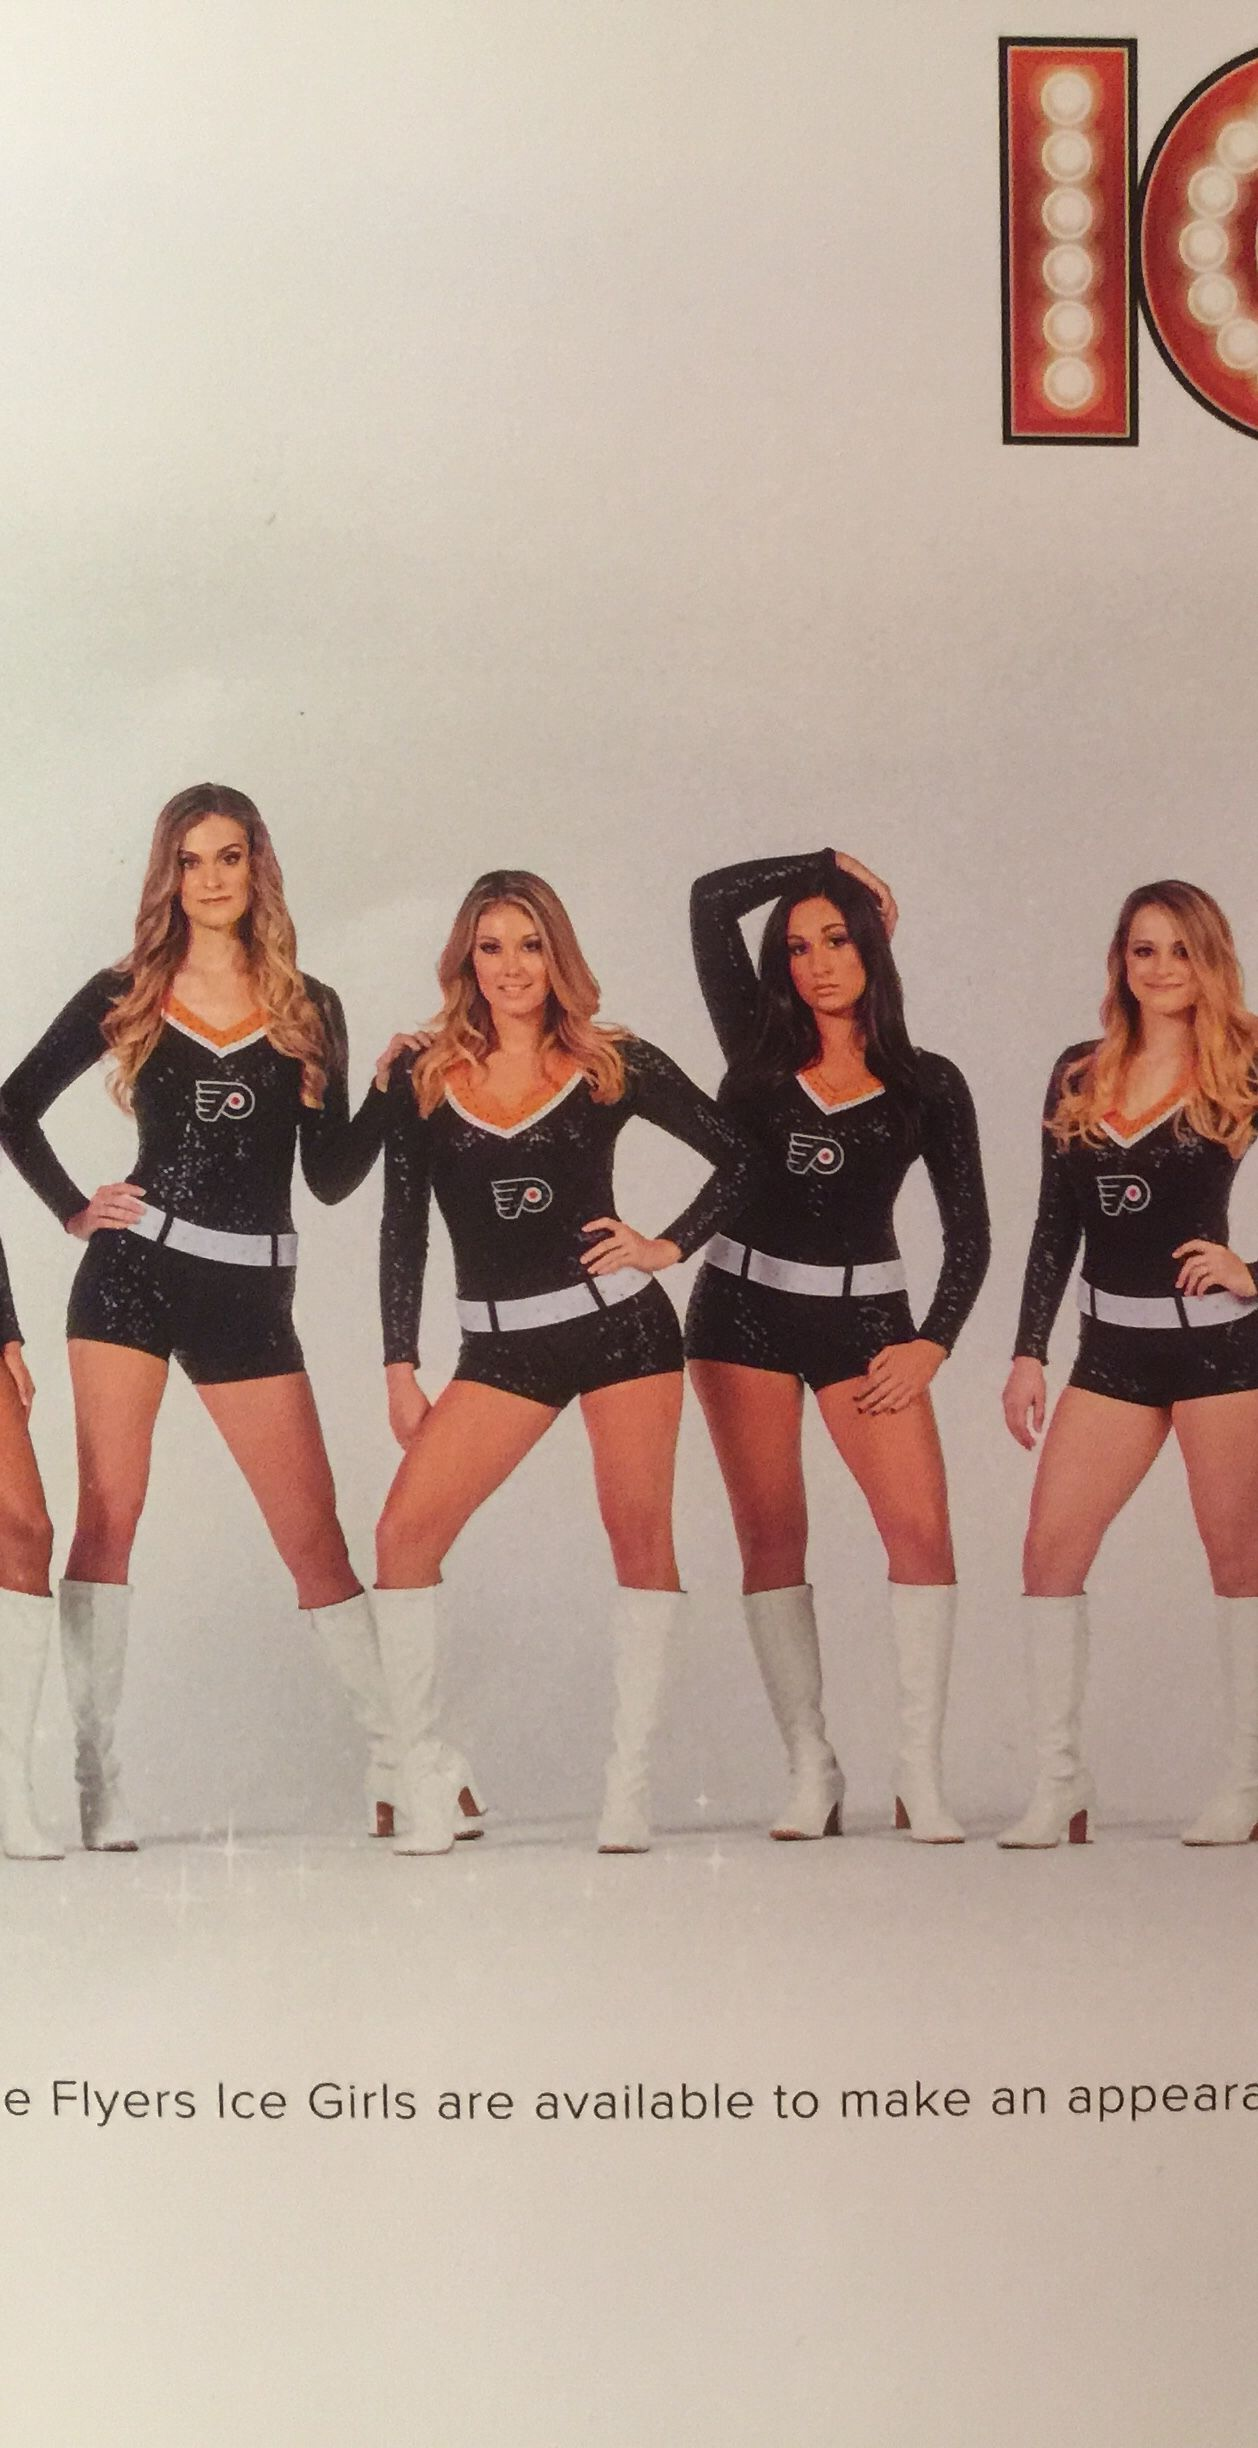 Pin By Jerseygirlsouth On Flyers Ice Hockey Girls Hot Cheerleaders Ice Girls